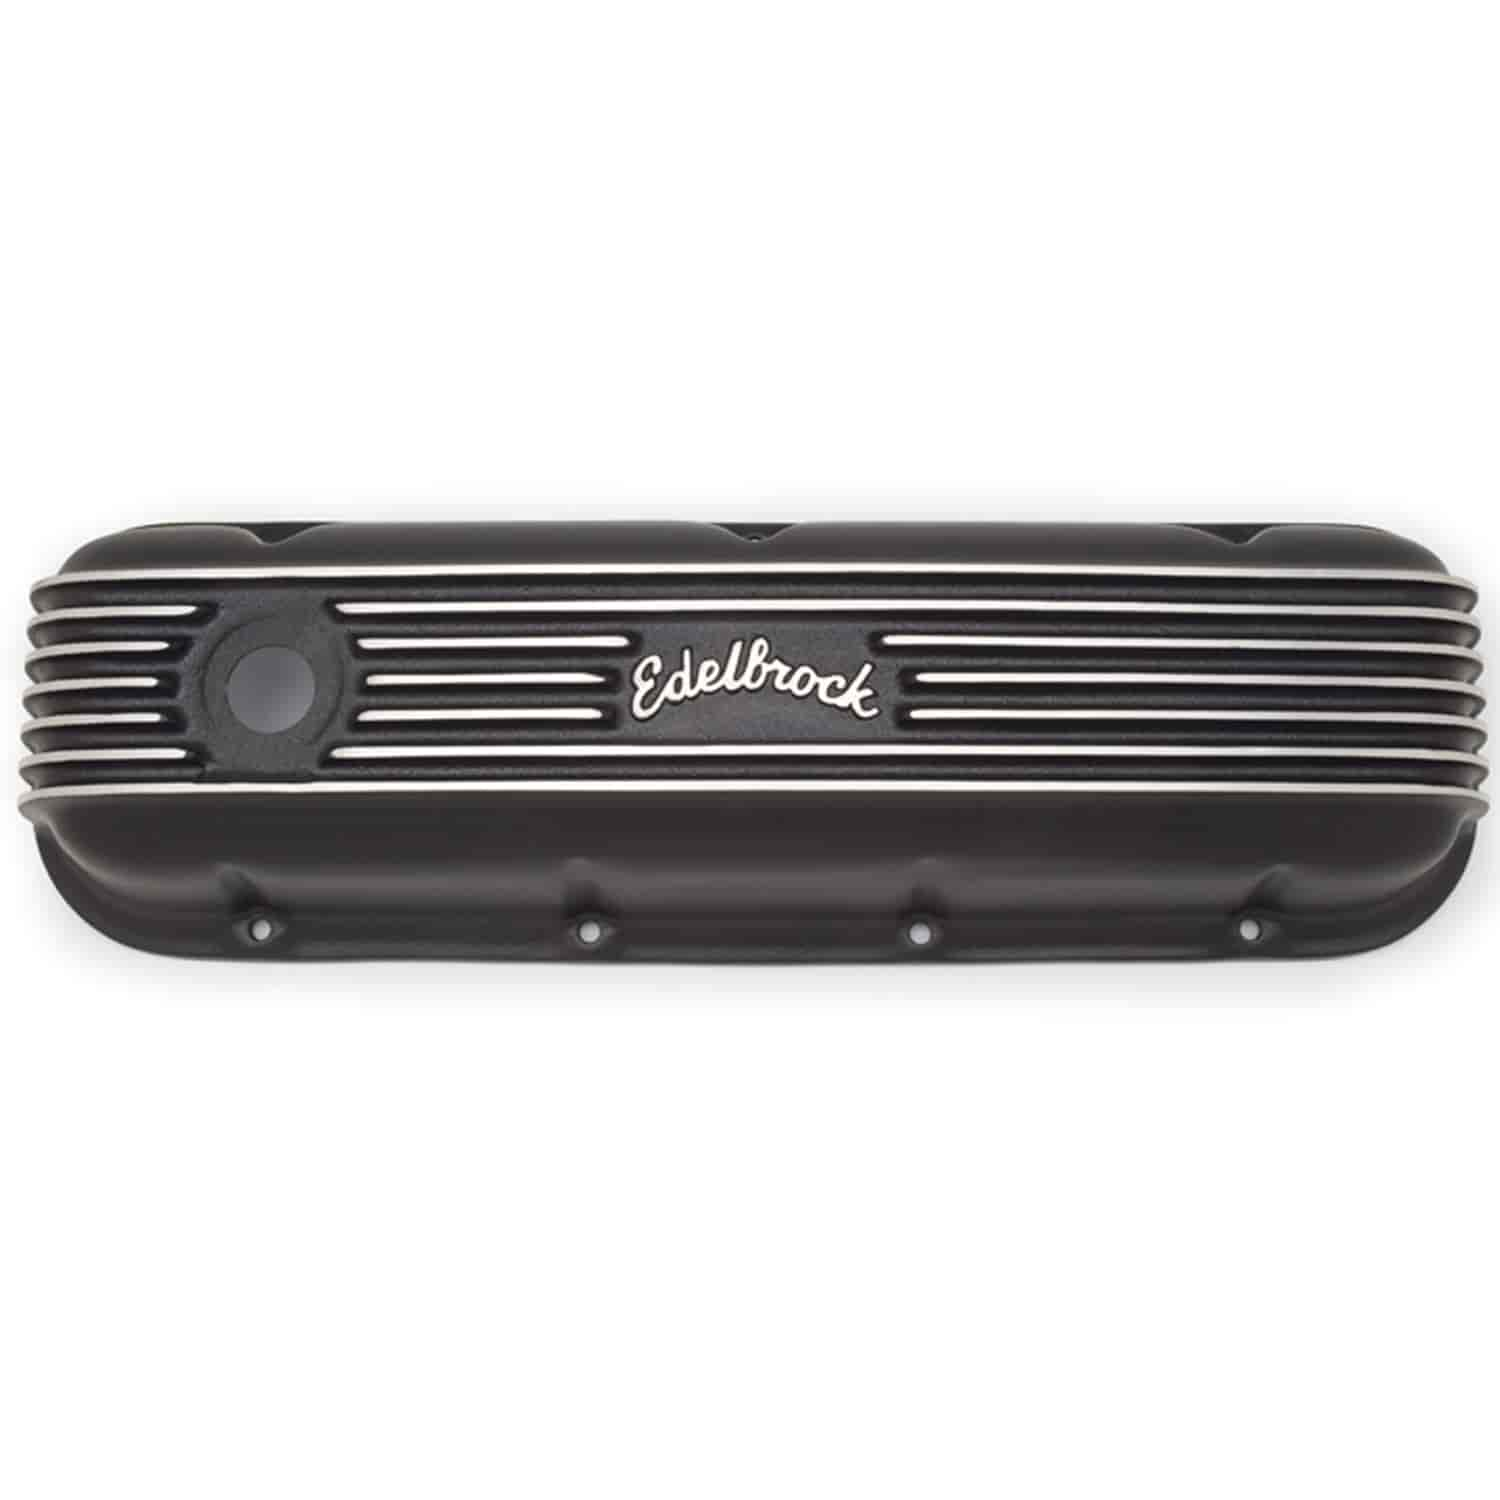 Edelbrock 41853 - Edelbrock Classic Series Valve Covers & Air Cleaners